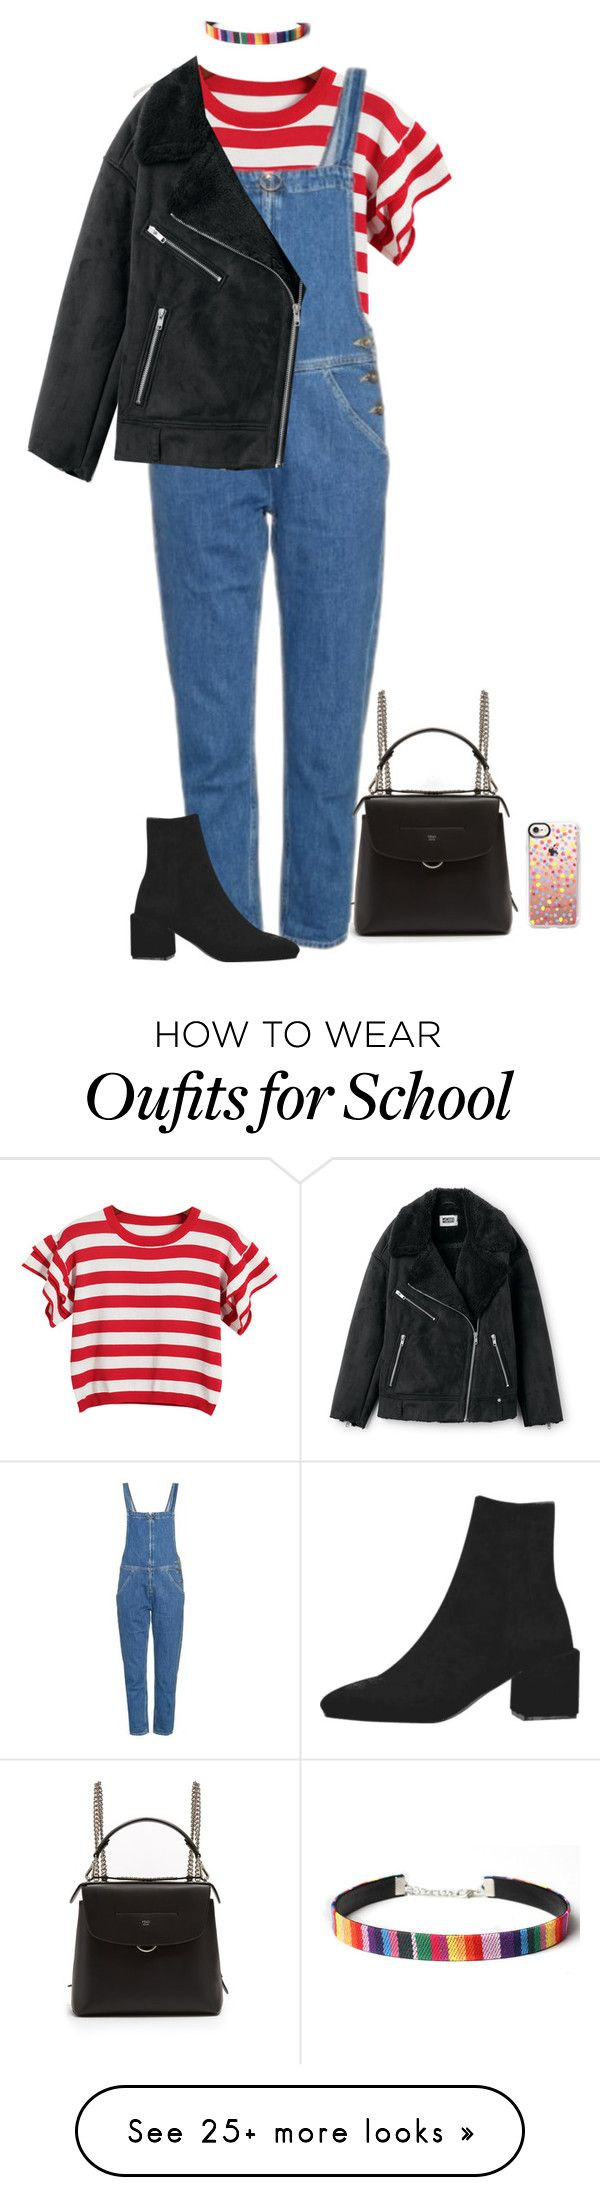 """""""COLORFUL BLACK SOUL"""" by xxkaleighxx on Polyvore featuring Chicnova Fashion, M.i.h Jeans, Fendi, WithChic and Casetify"""